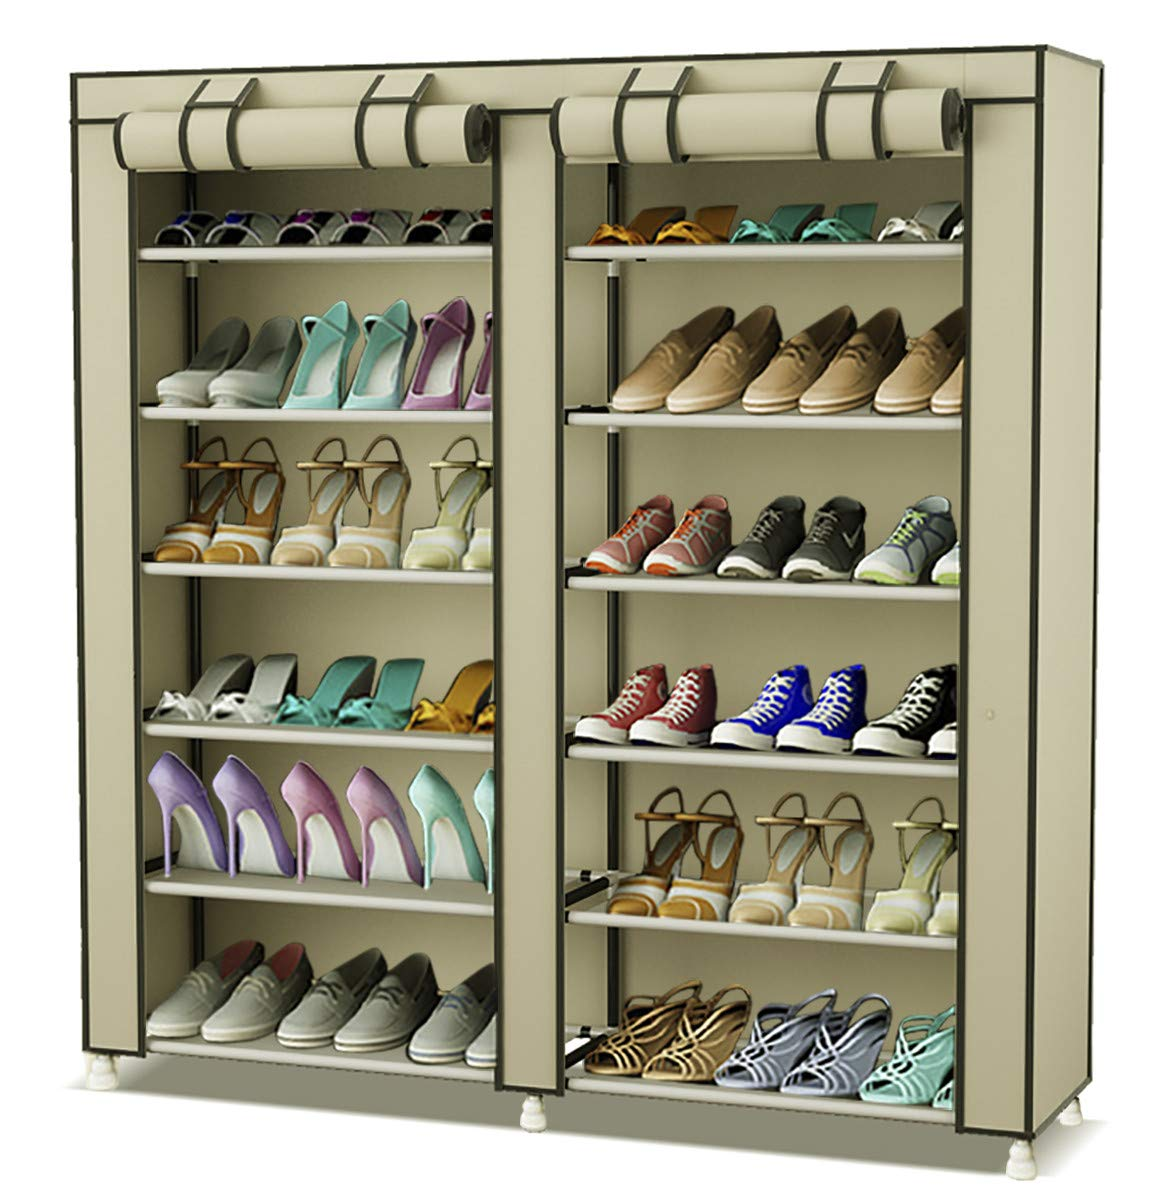 8b474cc735b0 TXT&BAZ 36-Pairs Portable Shoe Rack Double Row with Nonwoven Fabric Cover  (7-Tiers Beige)